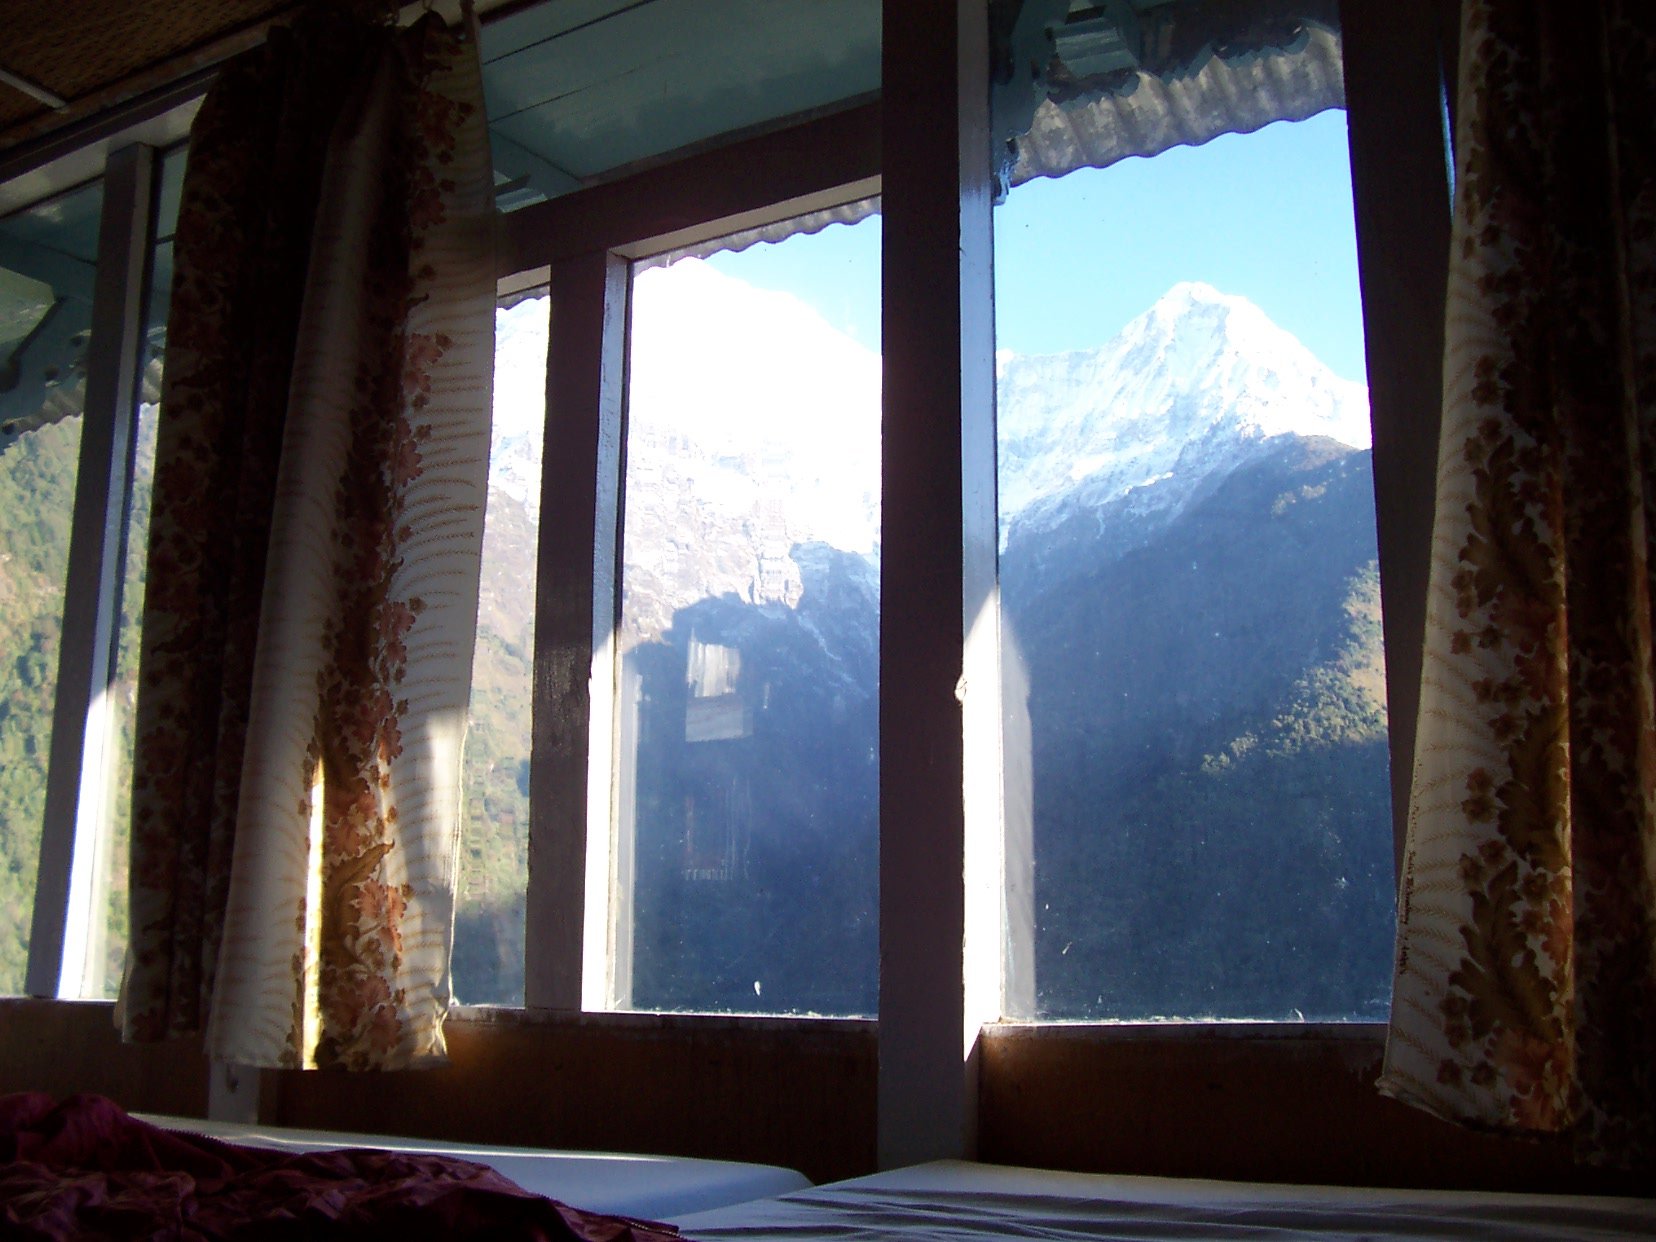 annet mountains Himalaya mountain window quite a view